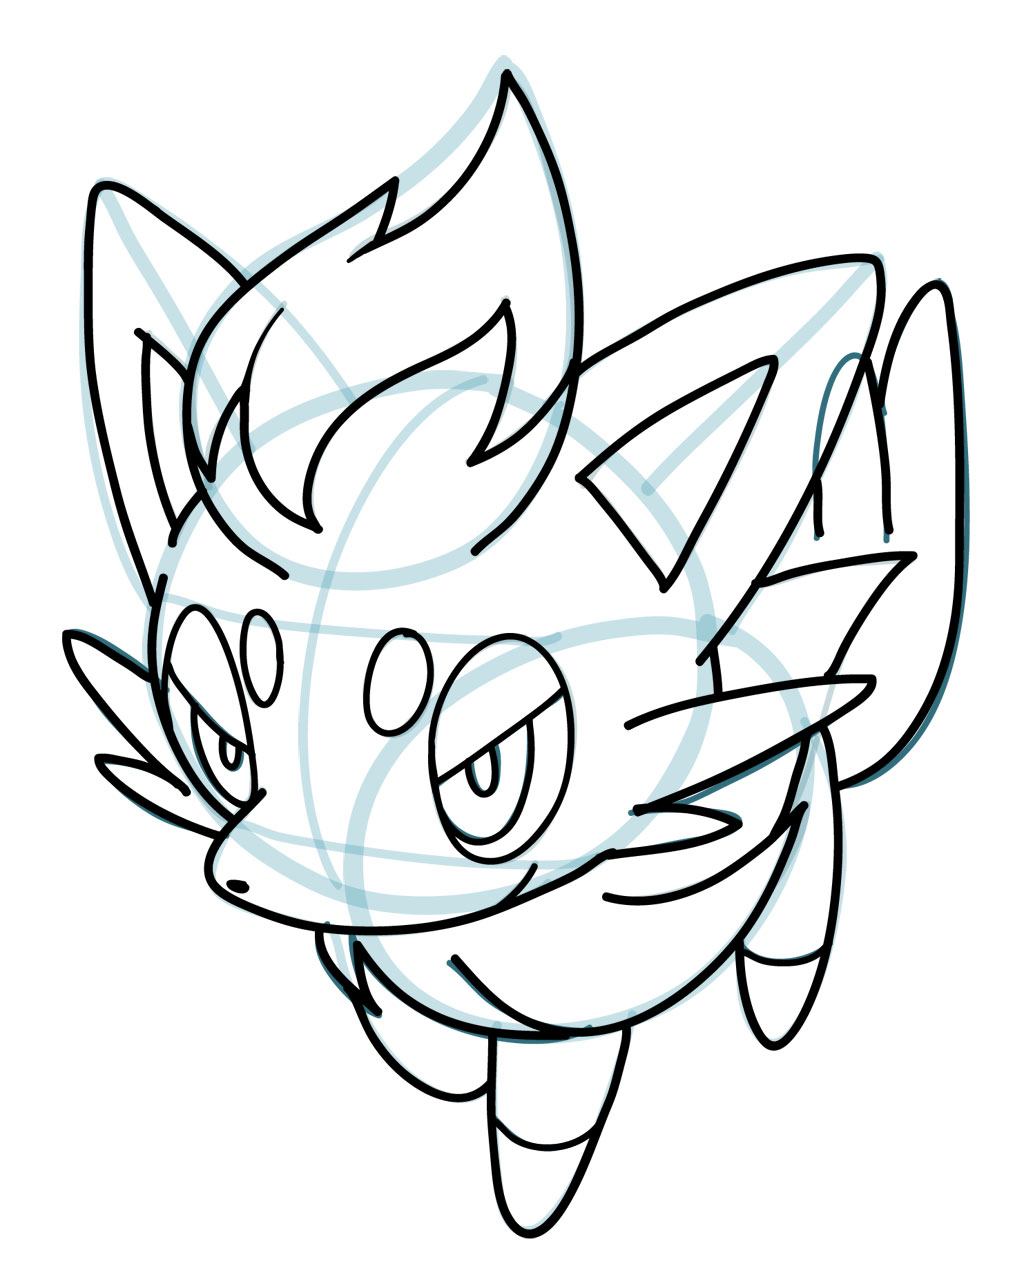 Drawn pokeball shading drawing To How Pokemon Tips how